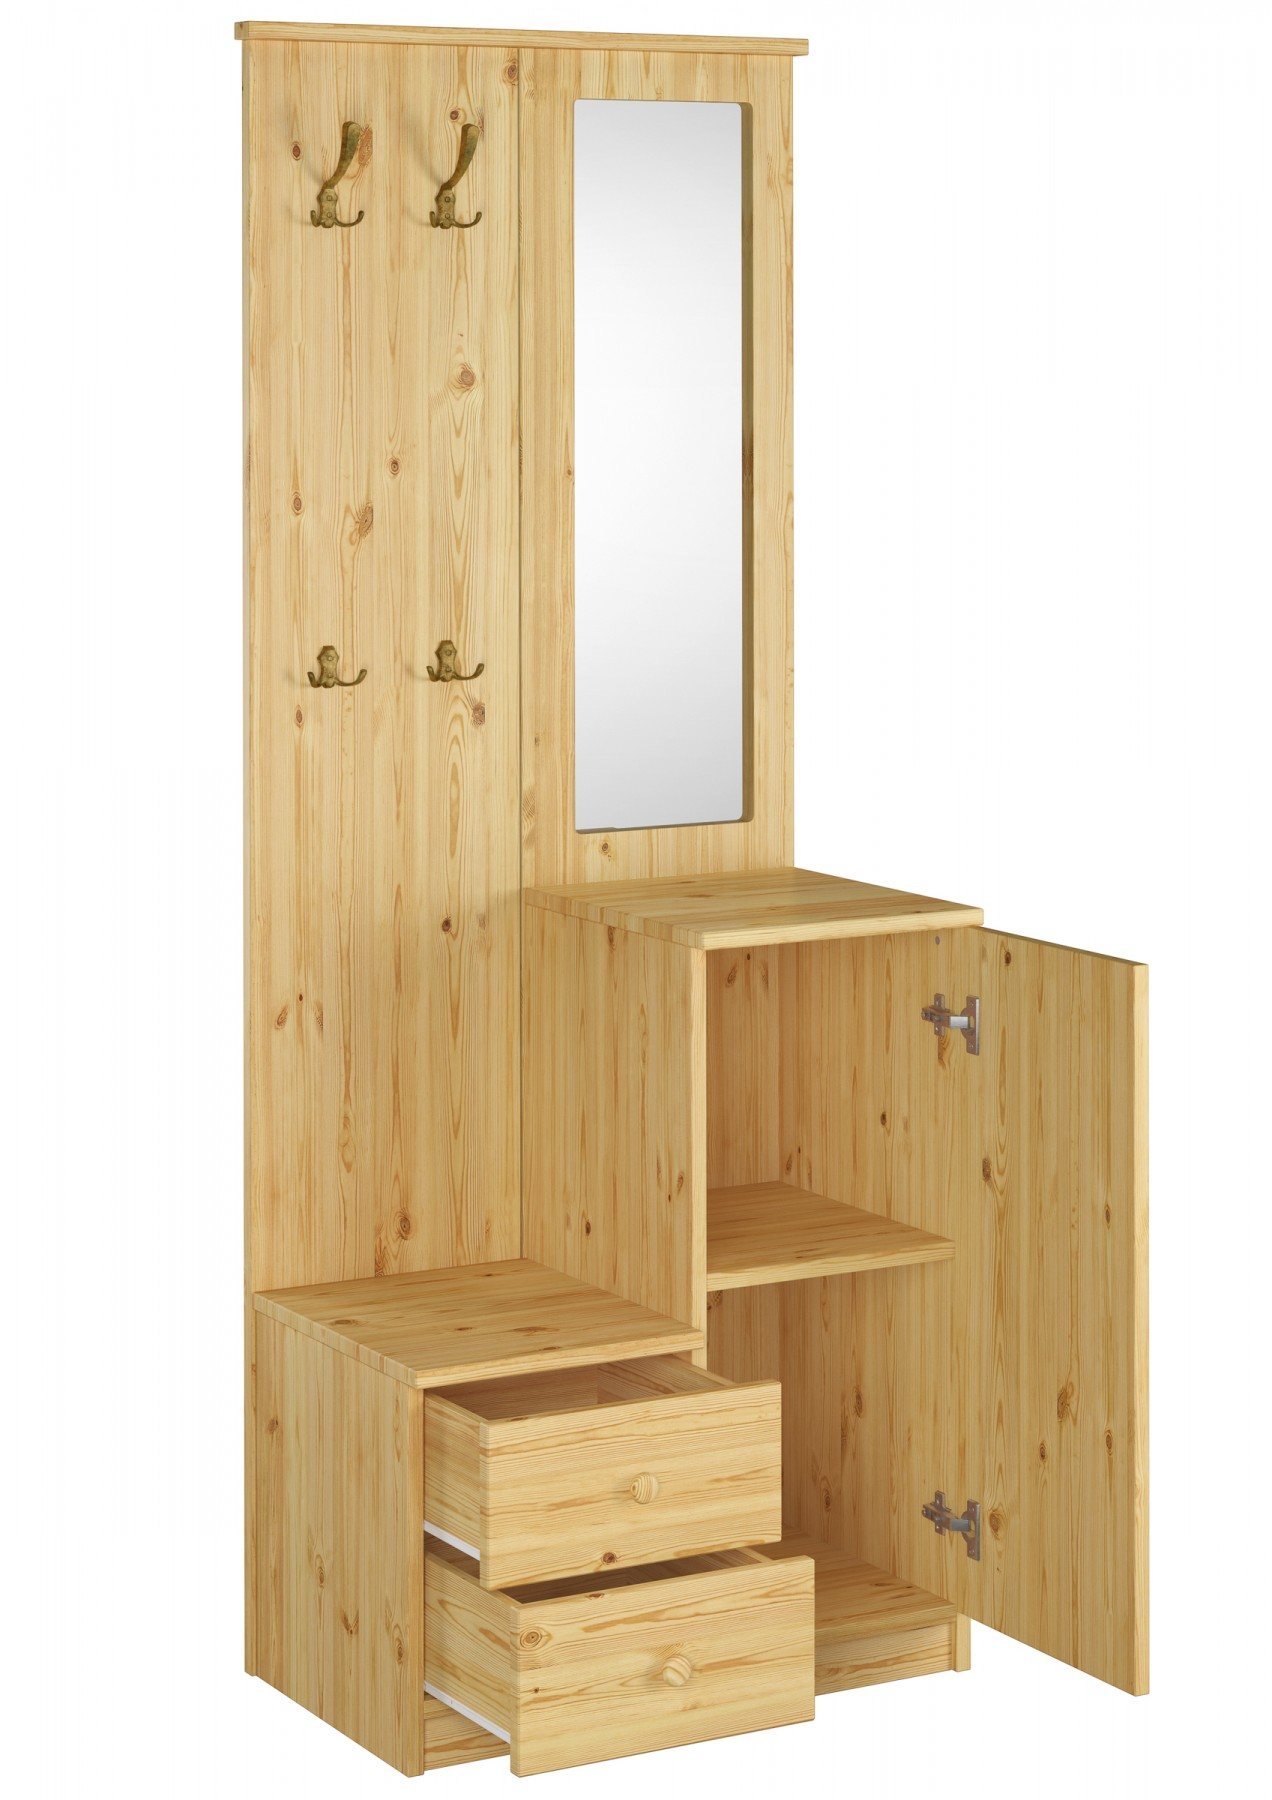 garderobe mit spiegel wandhaken kiefer massiv flurm bel dielenschrank. Black Bedroom Furniture Sets. Home Design Ideas